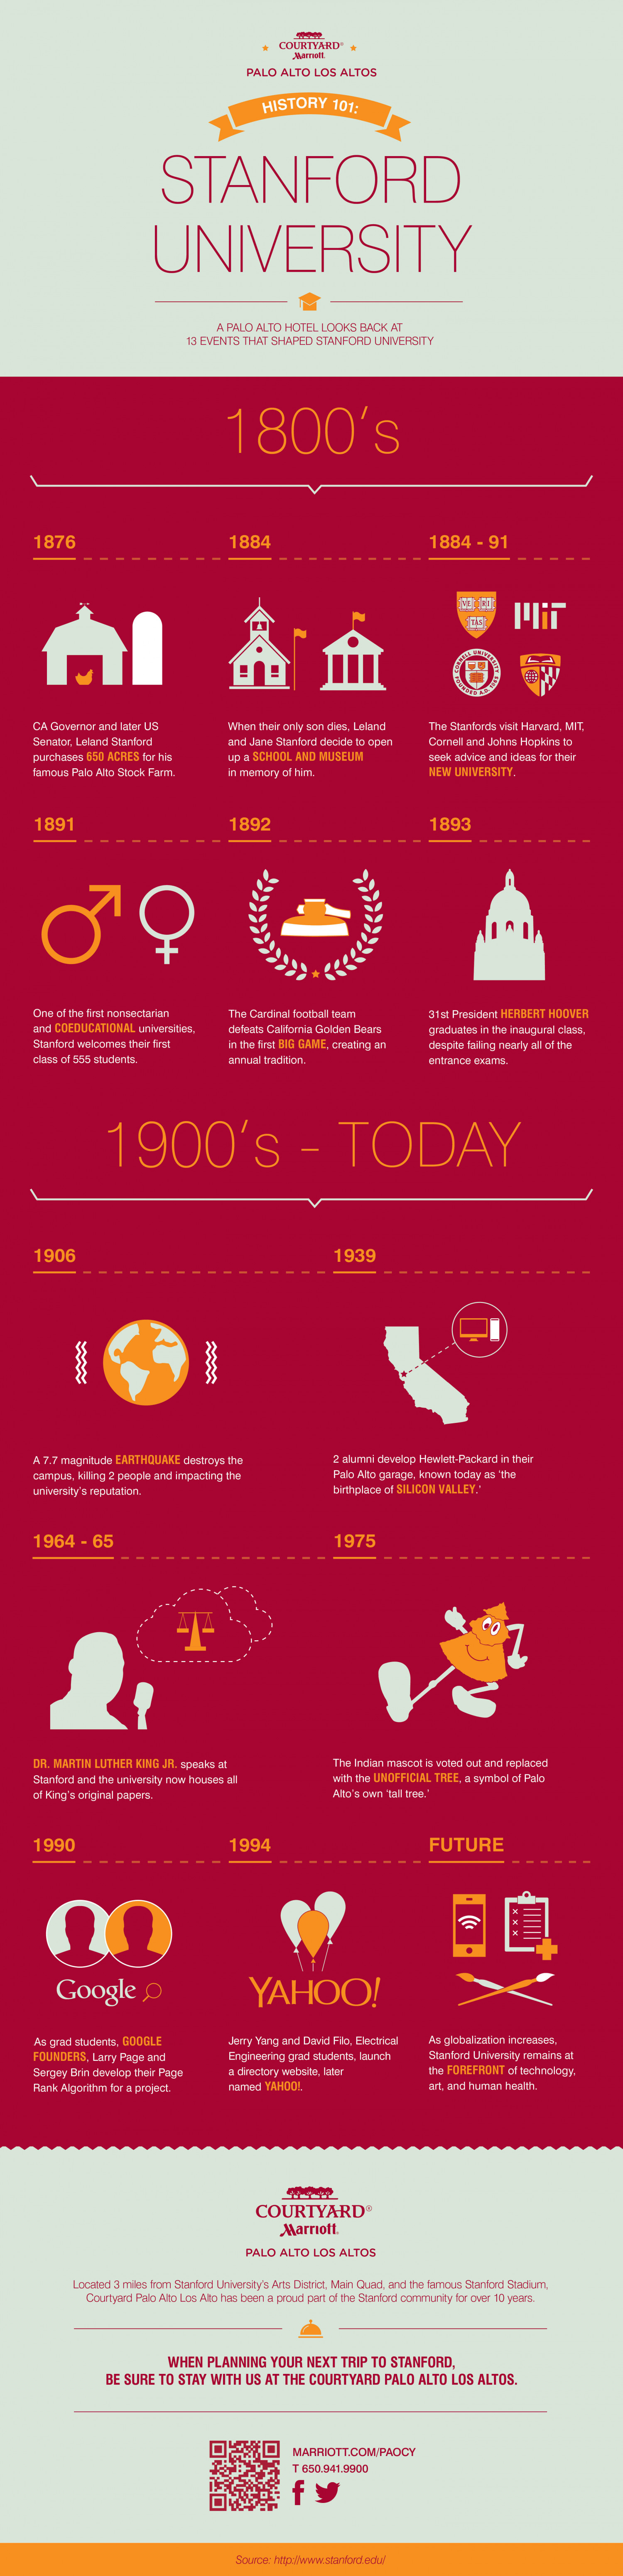 History 101: Stanford University Infographic